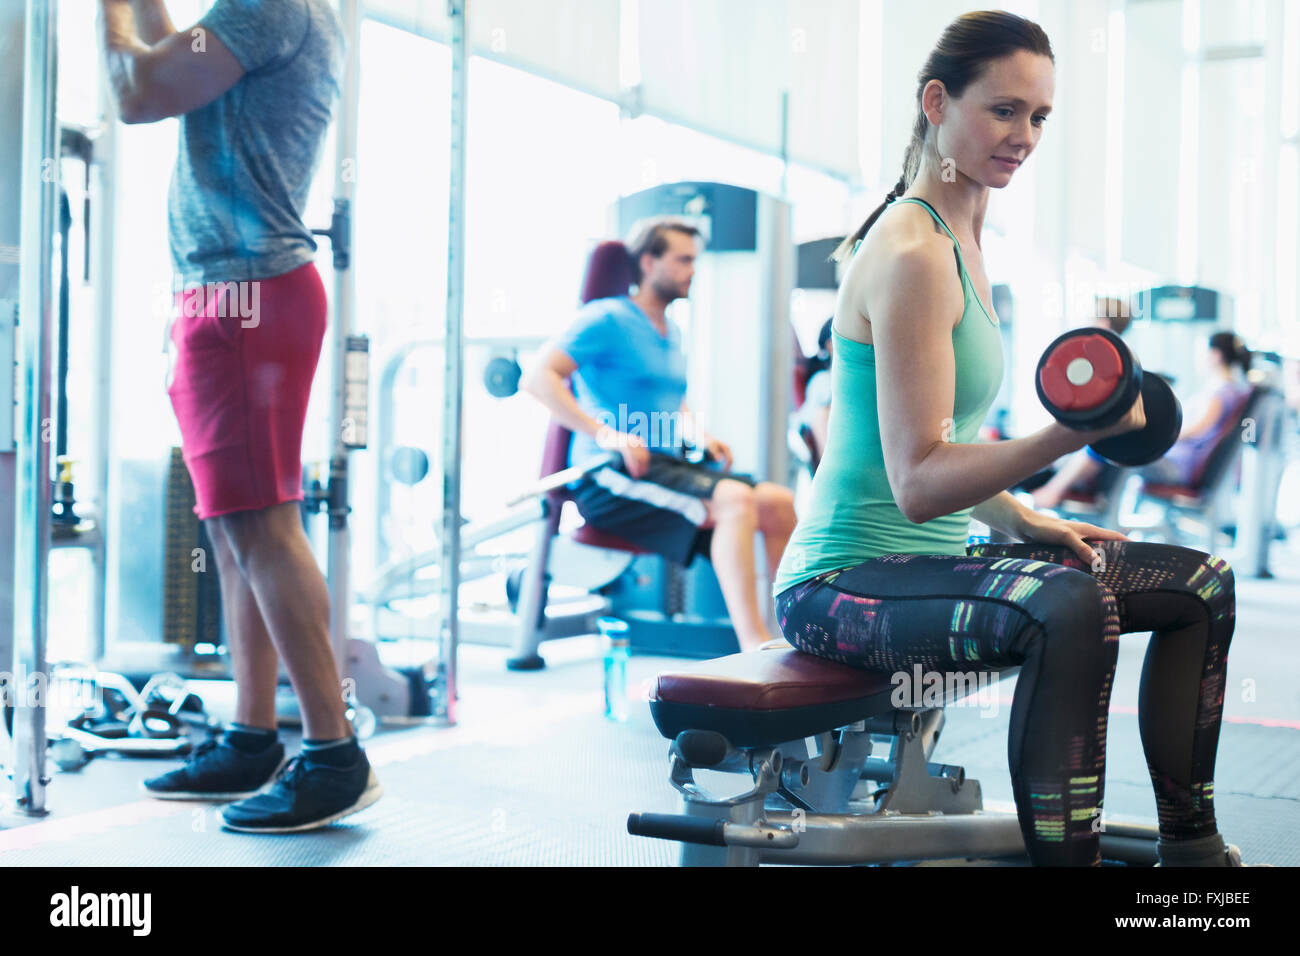 Woman doing dumbbell biceps curls at gym - Stock Image